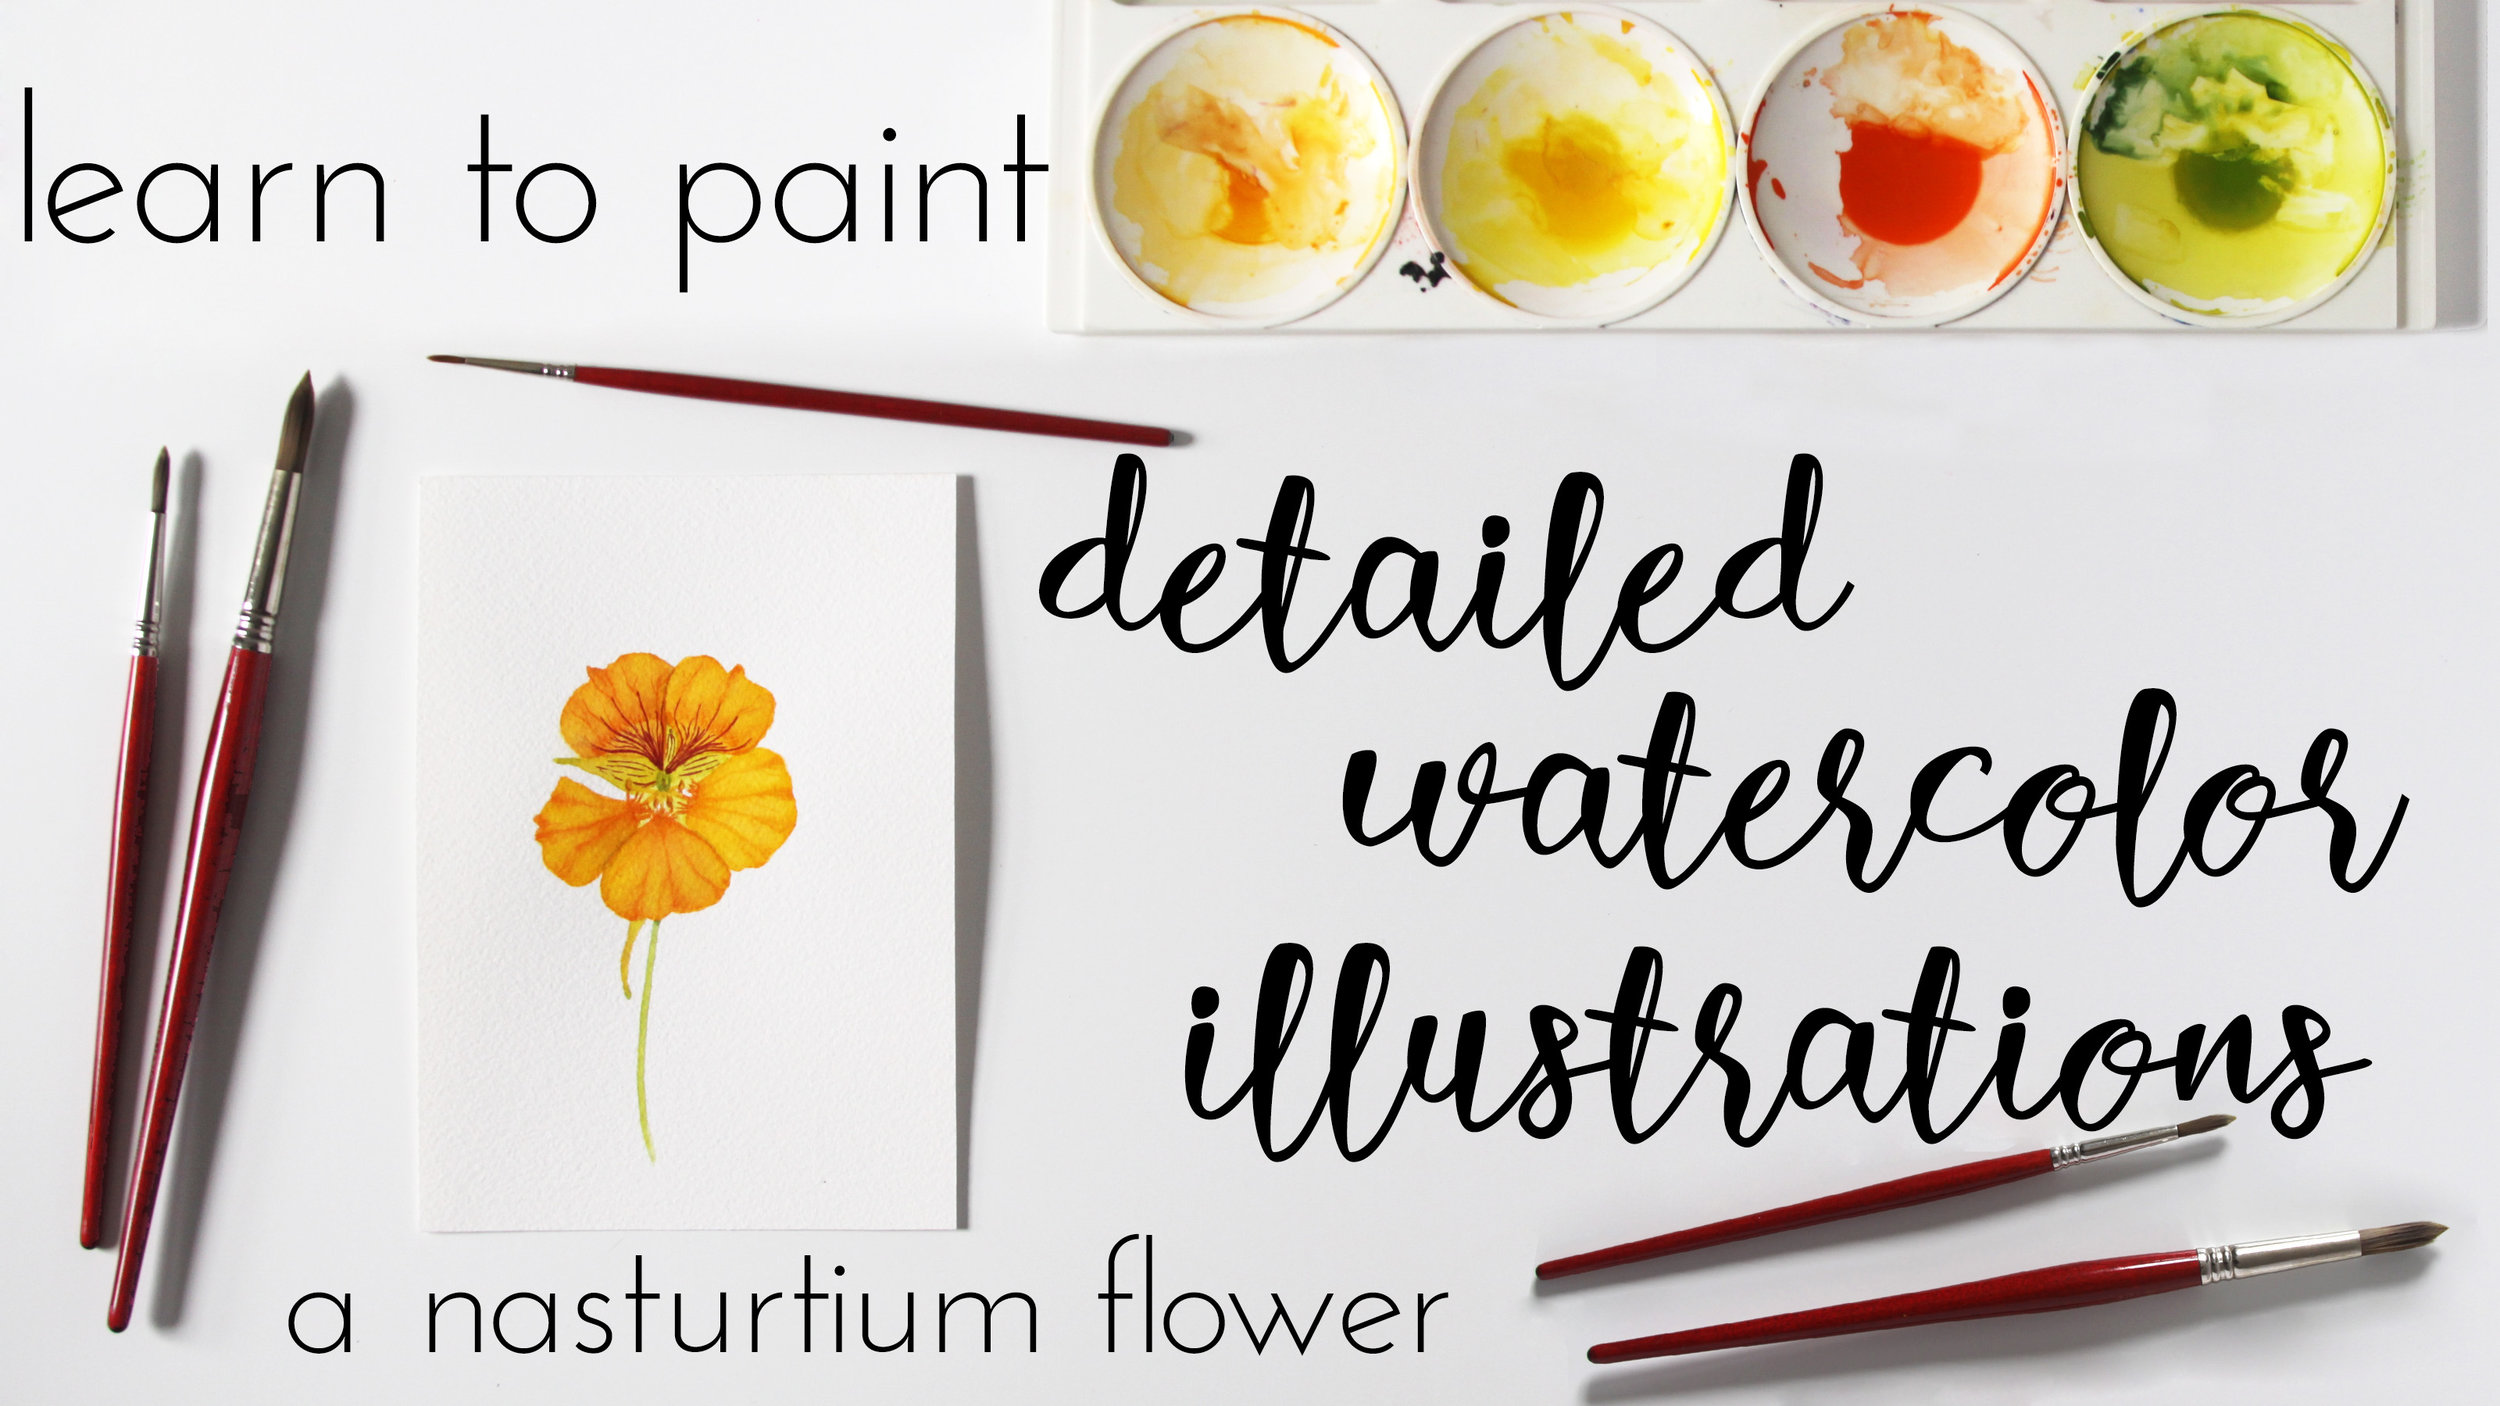 Learn to Paint a Watercolor Nasturtium